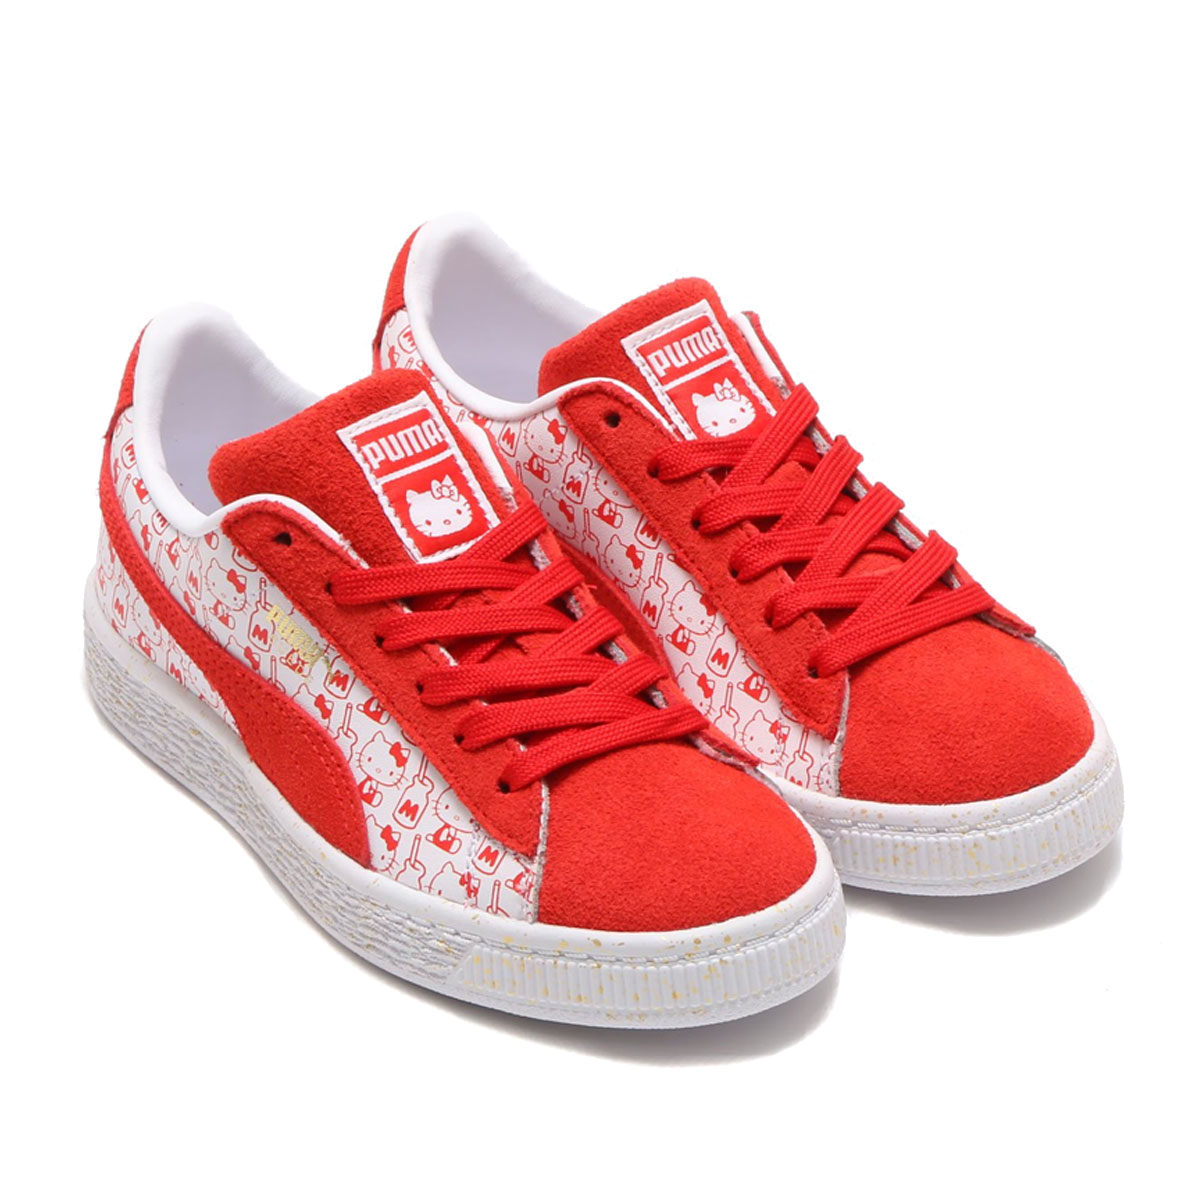 best sneakers 2574c 39268 PUMA SUEDE CLASSIC X HELLO KITTY PS (Puma suede classical music X Hello  Kitty PS) BRIGHT RED-BR 18SS-S